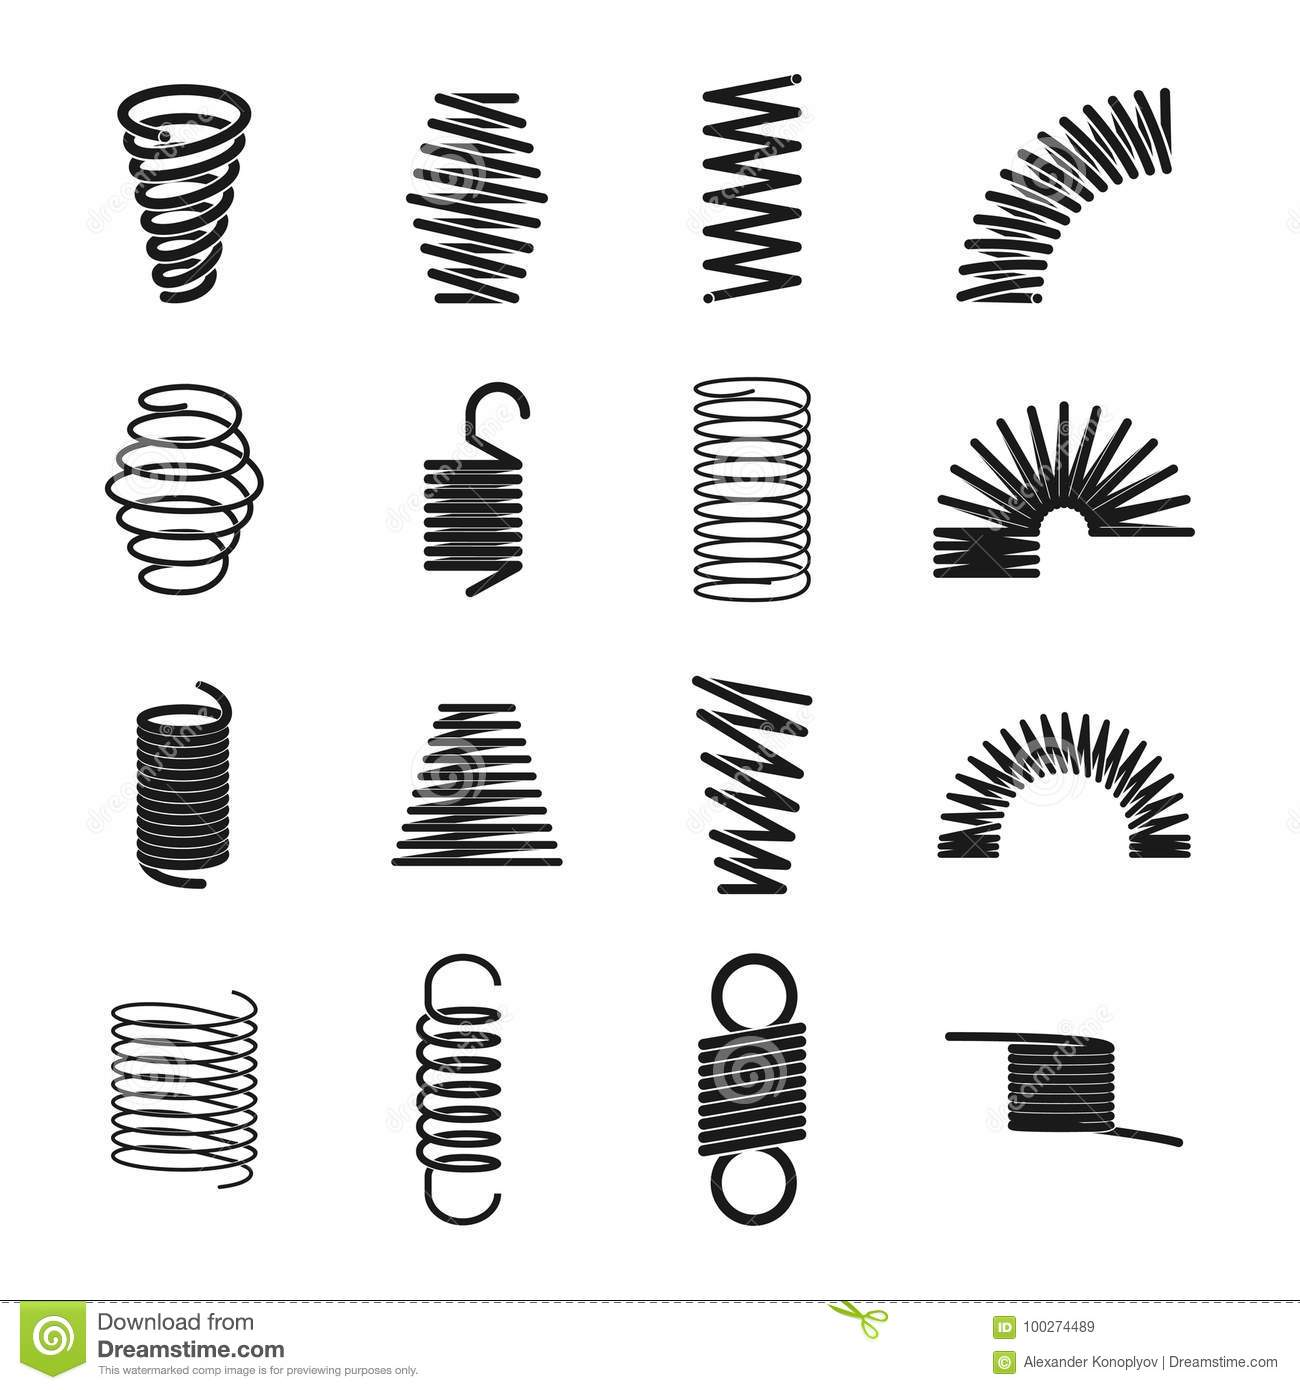 Icon Metal Gear With Cogs And Four Spokes Cartoon Vector